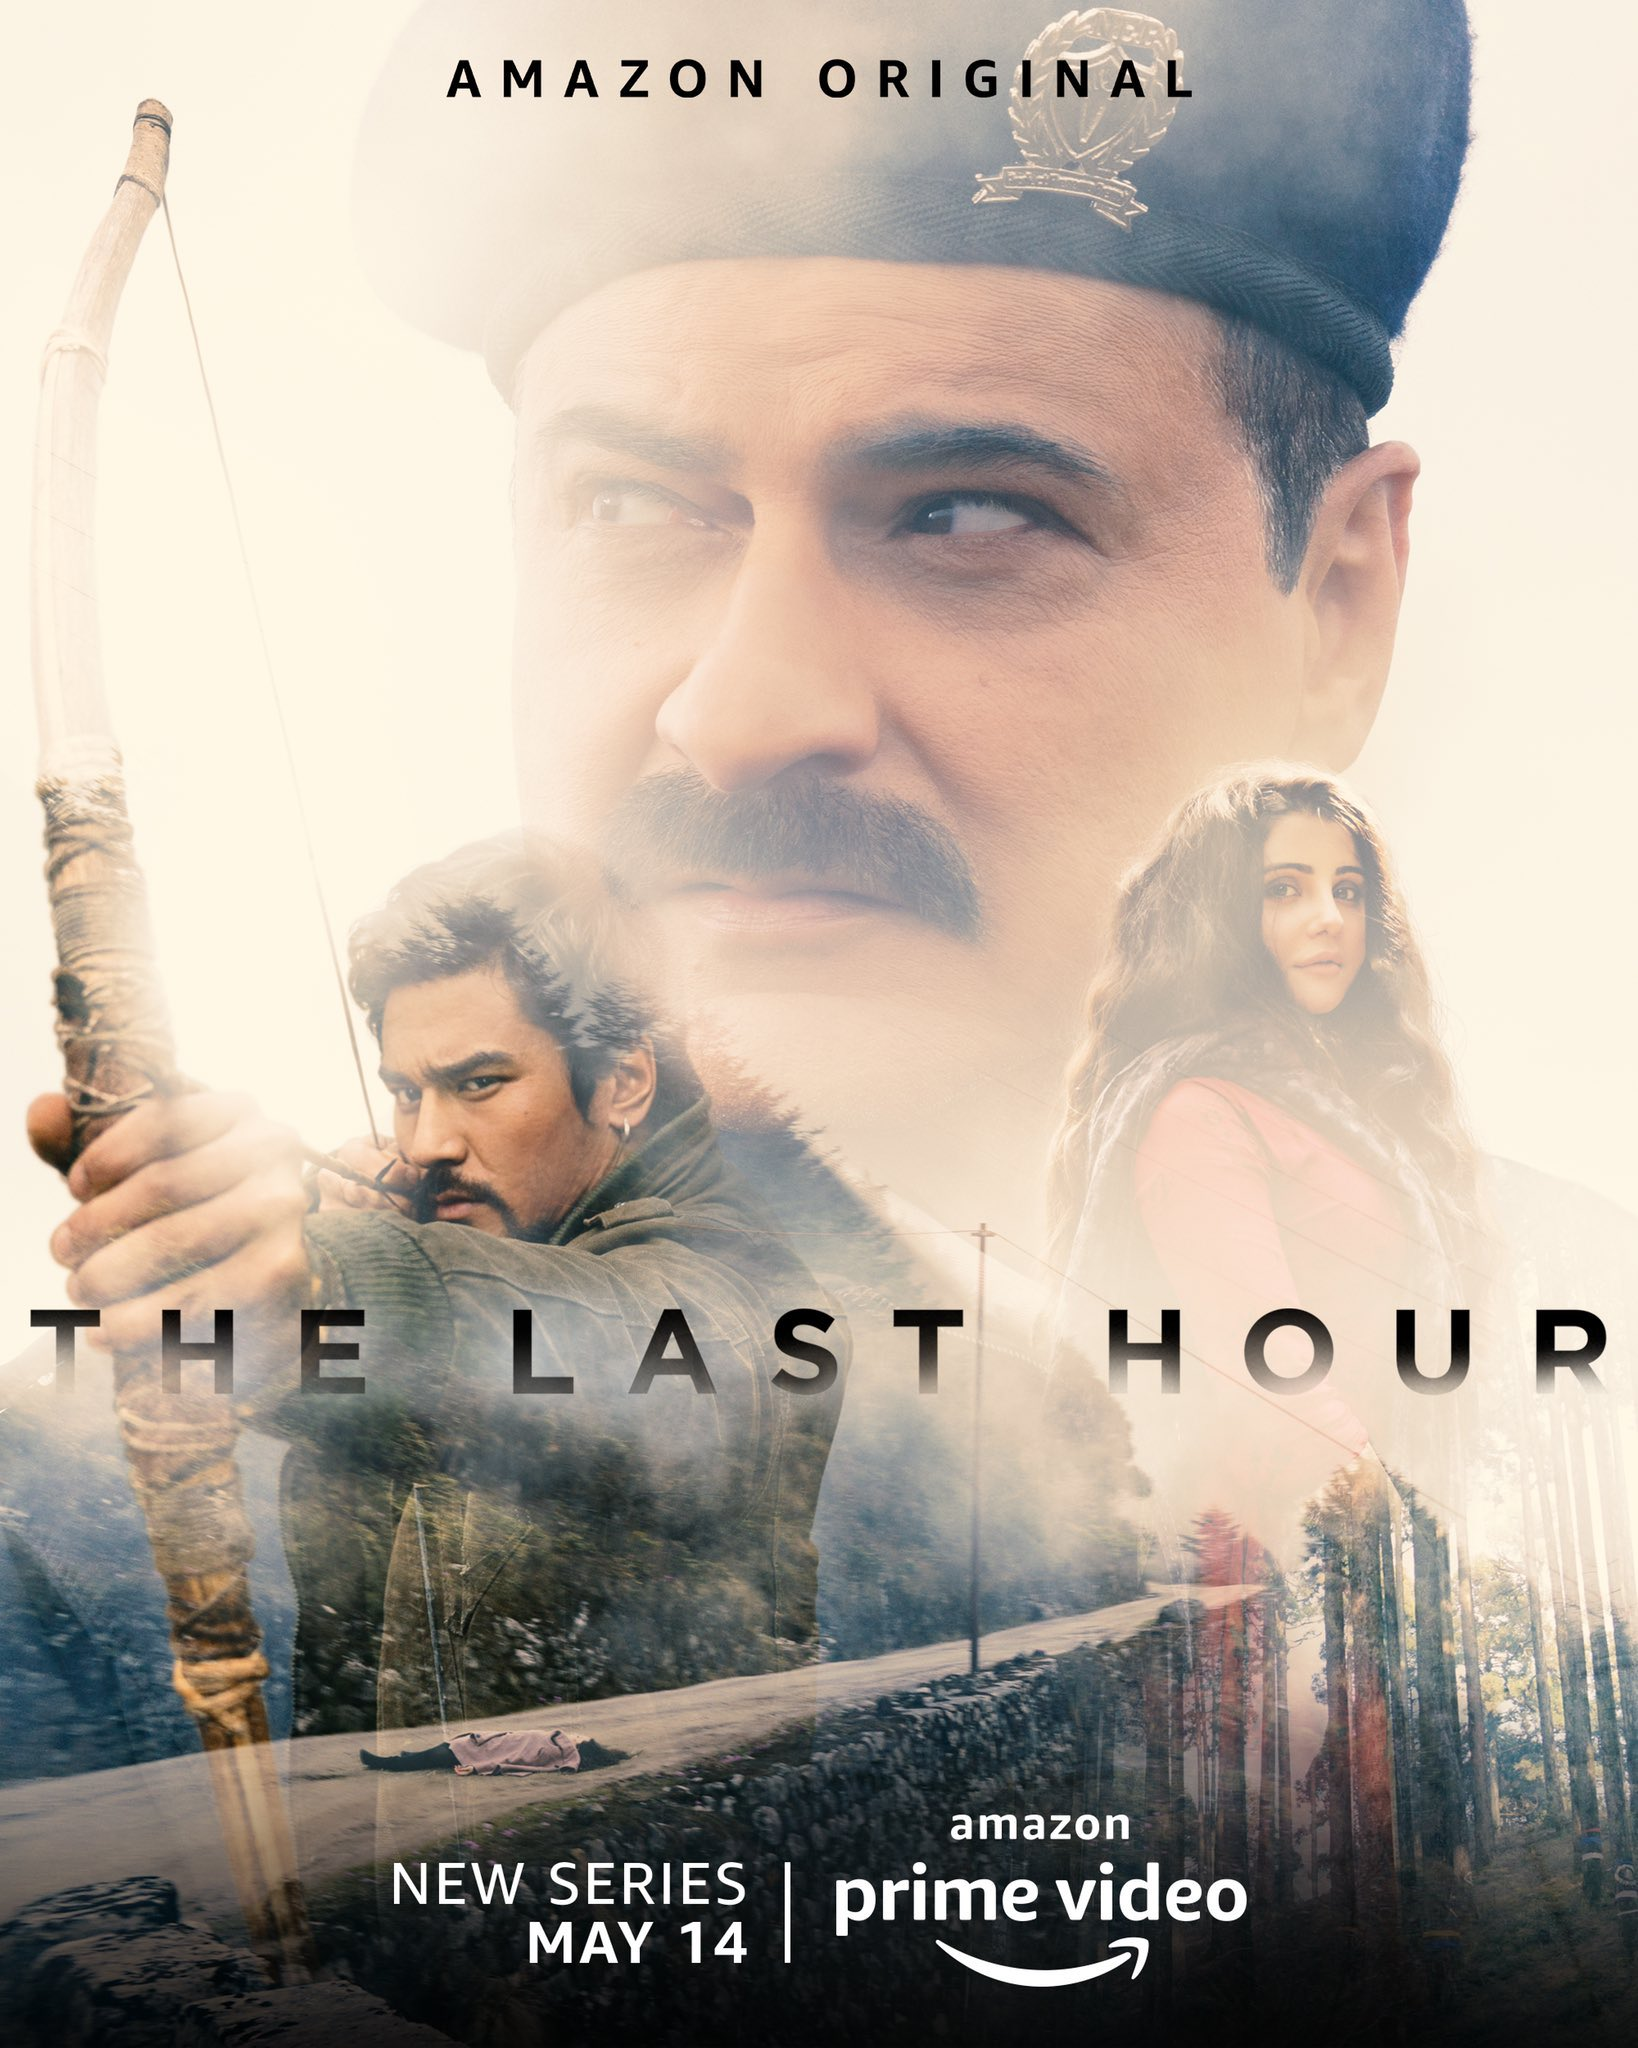 The Last Hour 2021 S01 Hindi Complete AMZN Web Series 720p HDRip 1.85GB Download